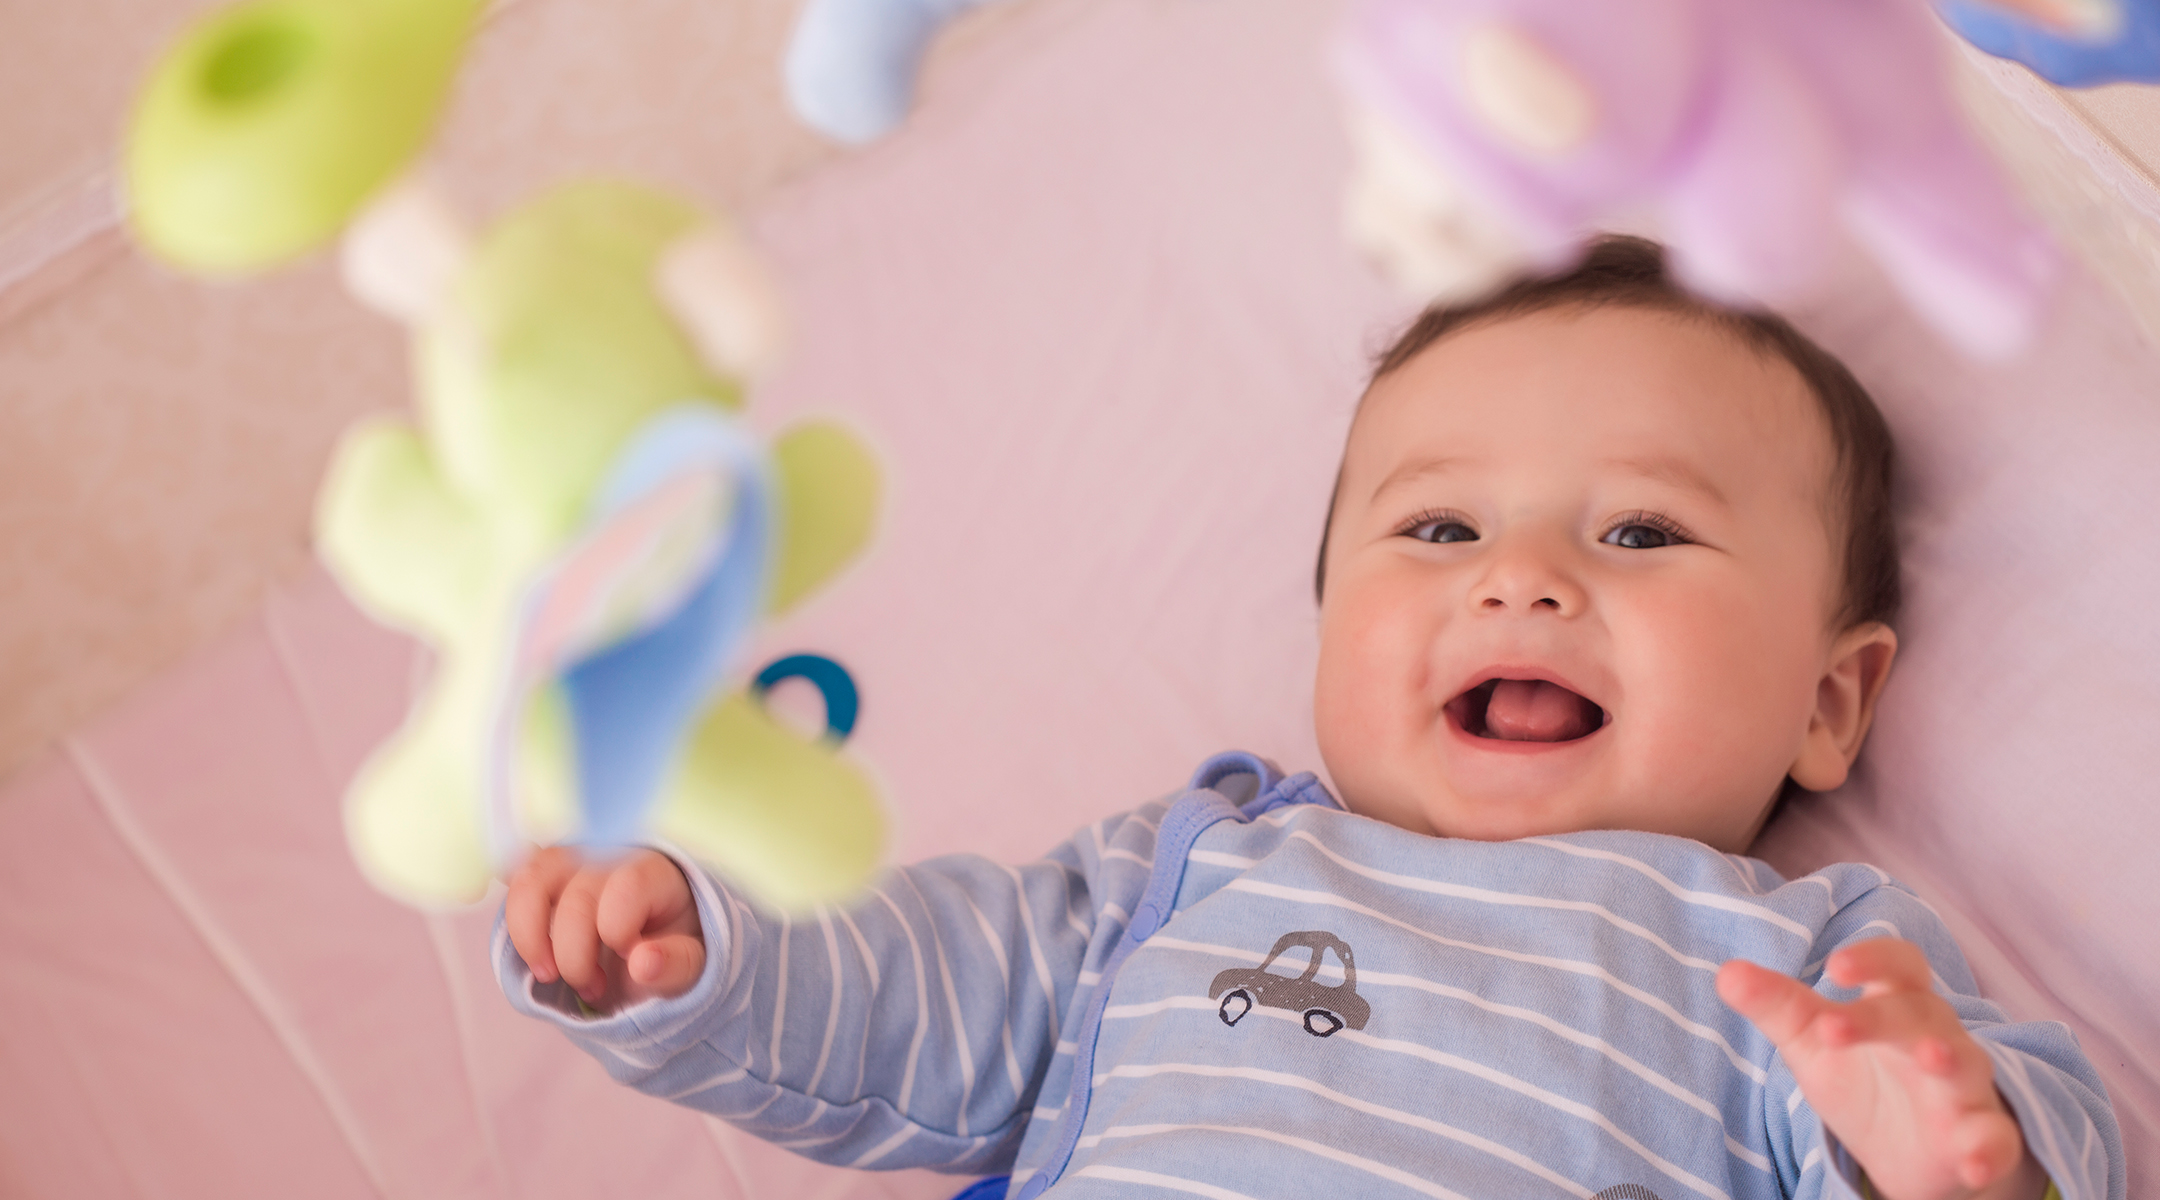 Babies Can Differentiate Between Colors: Study